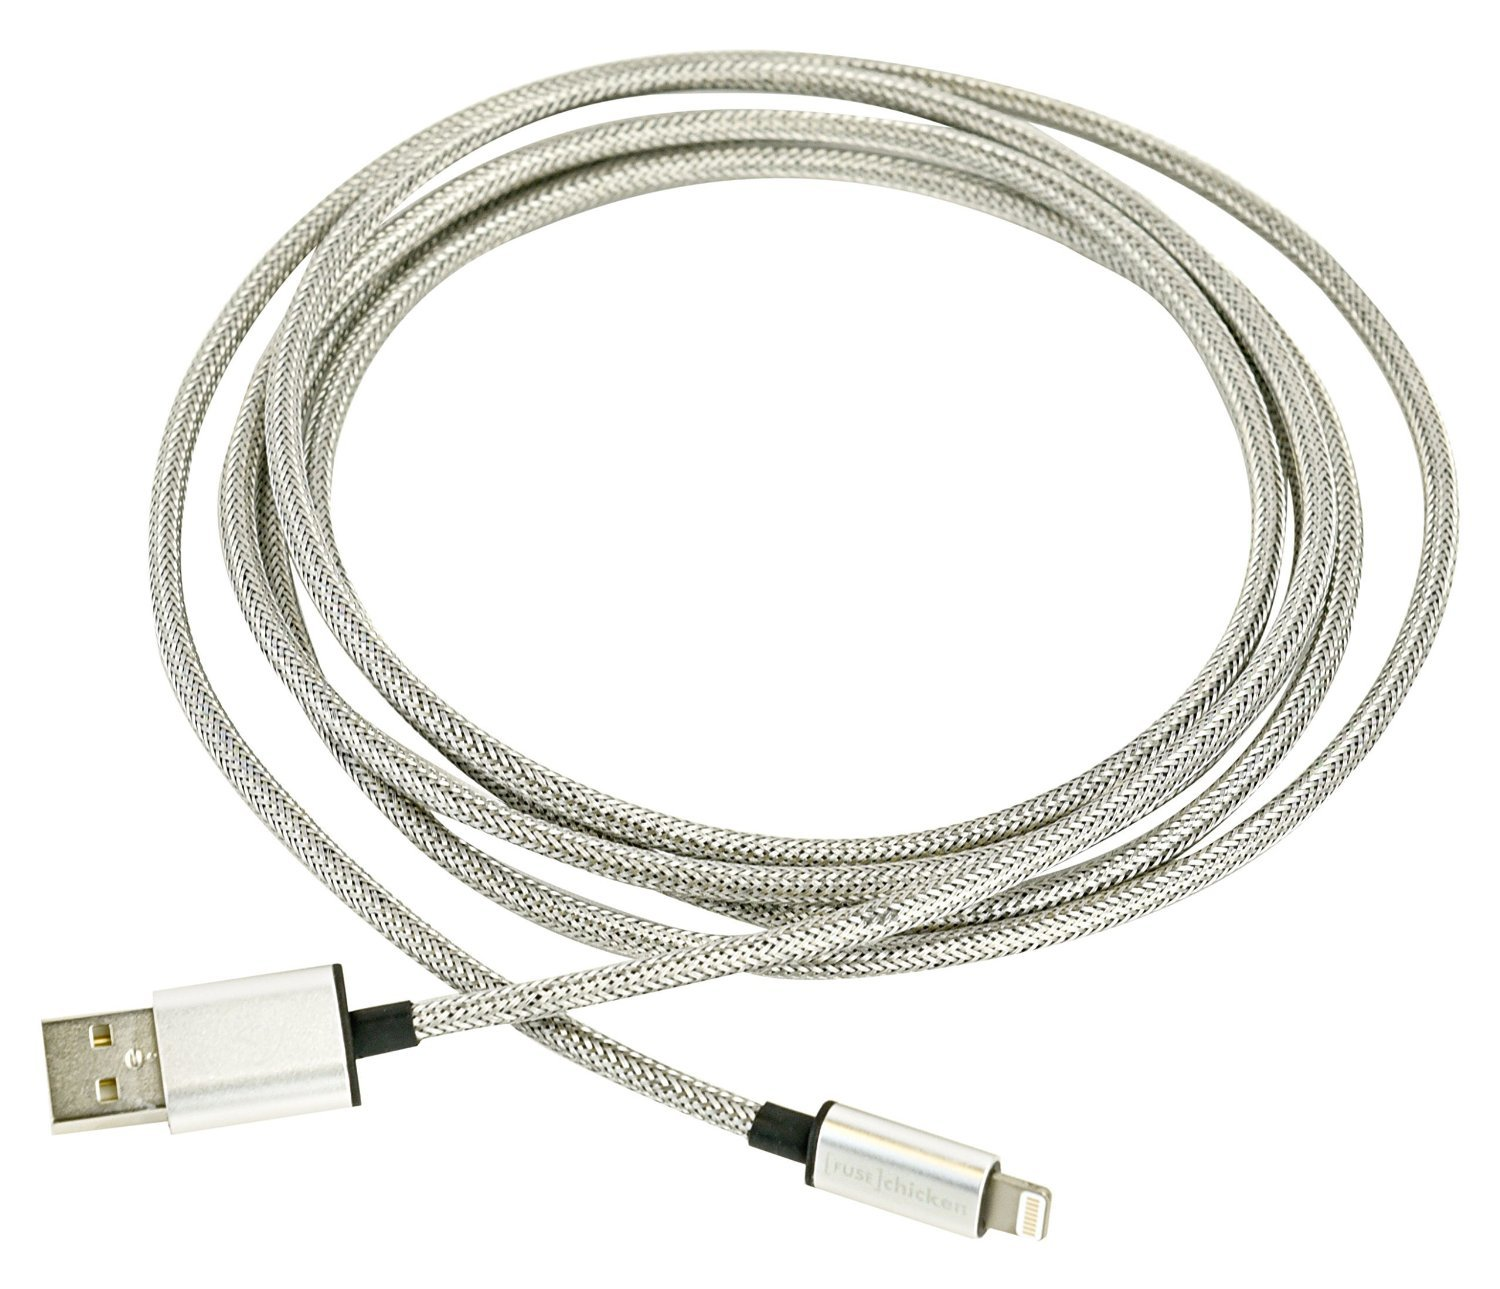 [FUSE] chicken ARMOUR CHARGE Stainless Steel iPhone Lightning Cable (2M) image